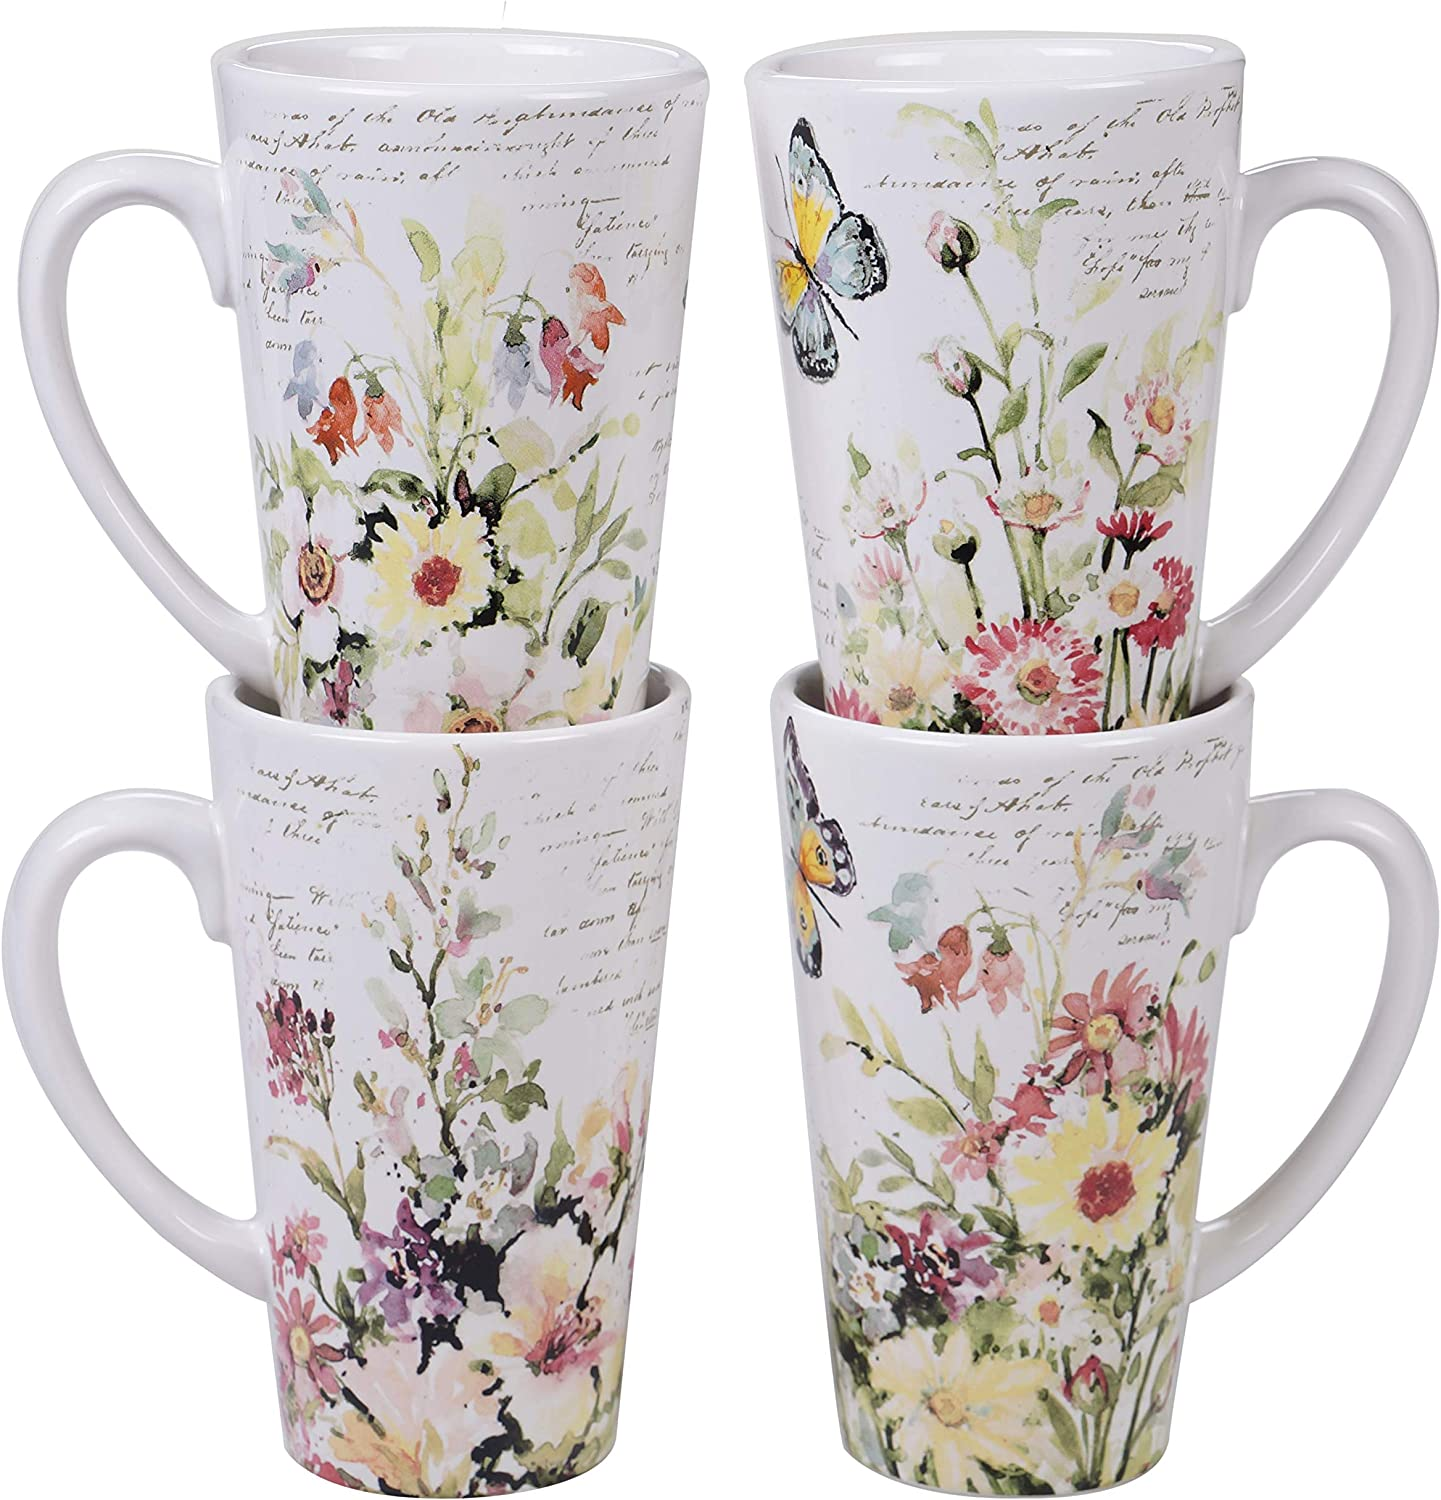 Certified International Spring Meadows 16 Max 54% OFF Latte National products of oz. Mugs Set